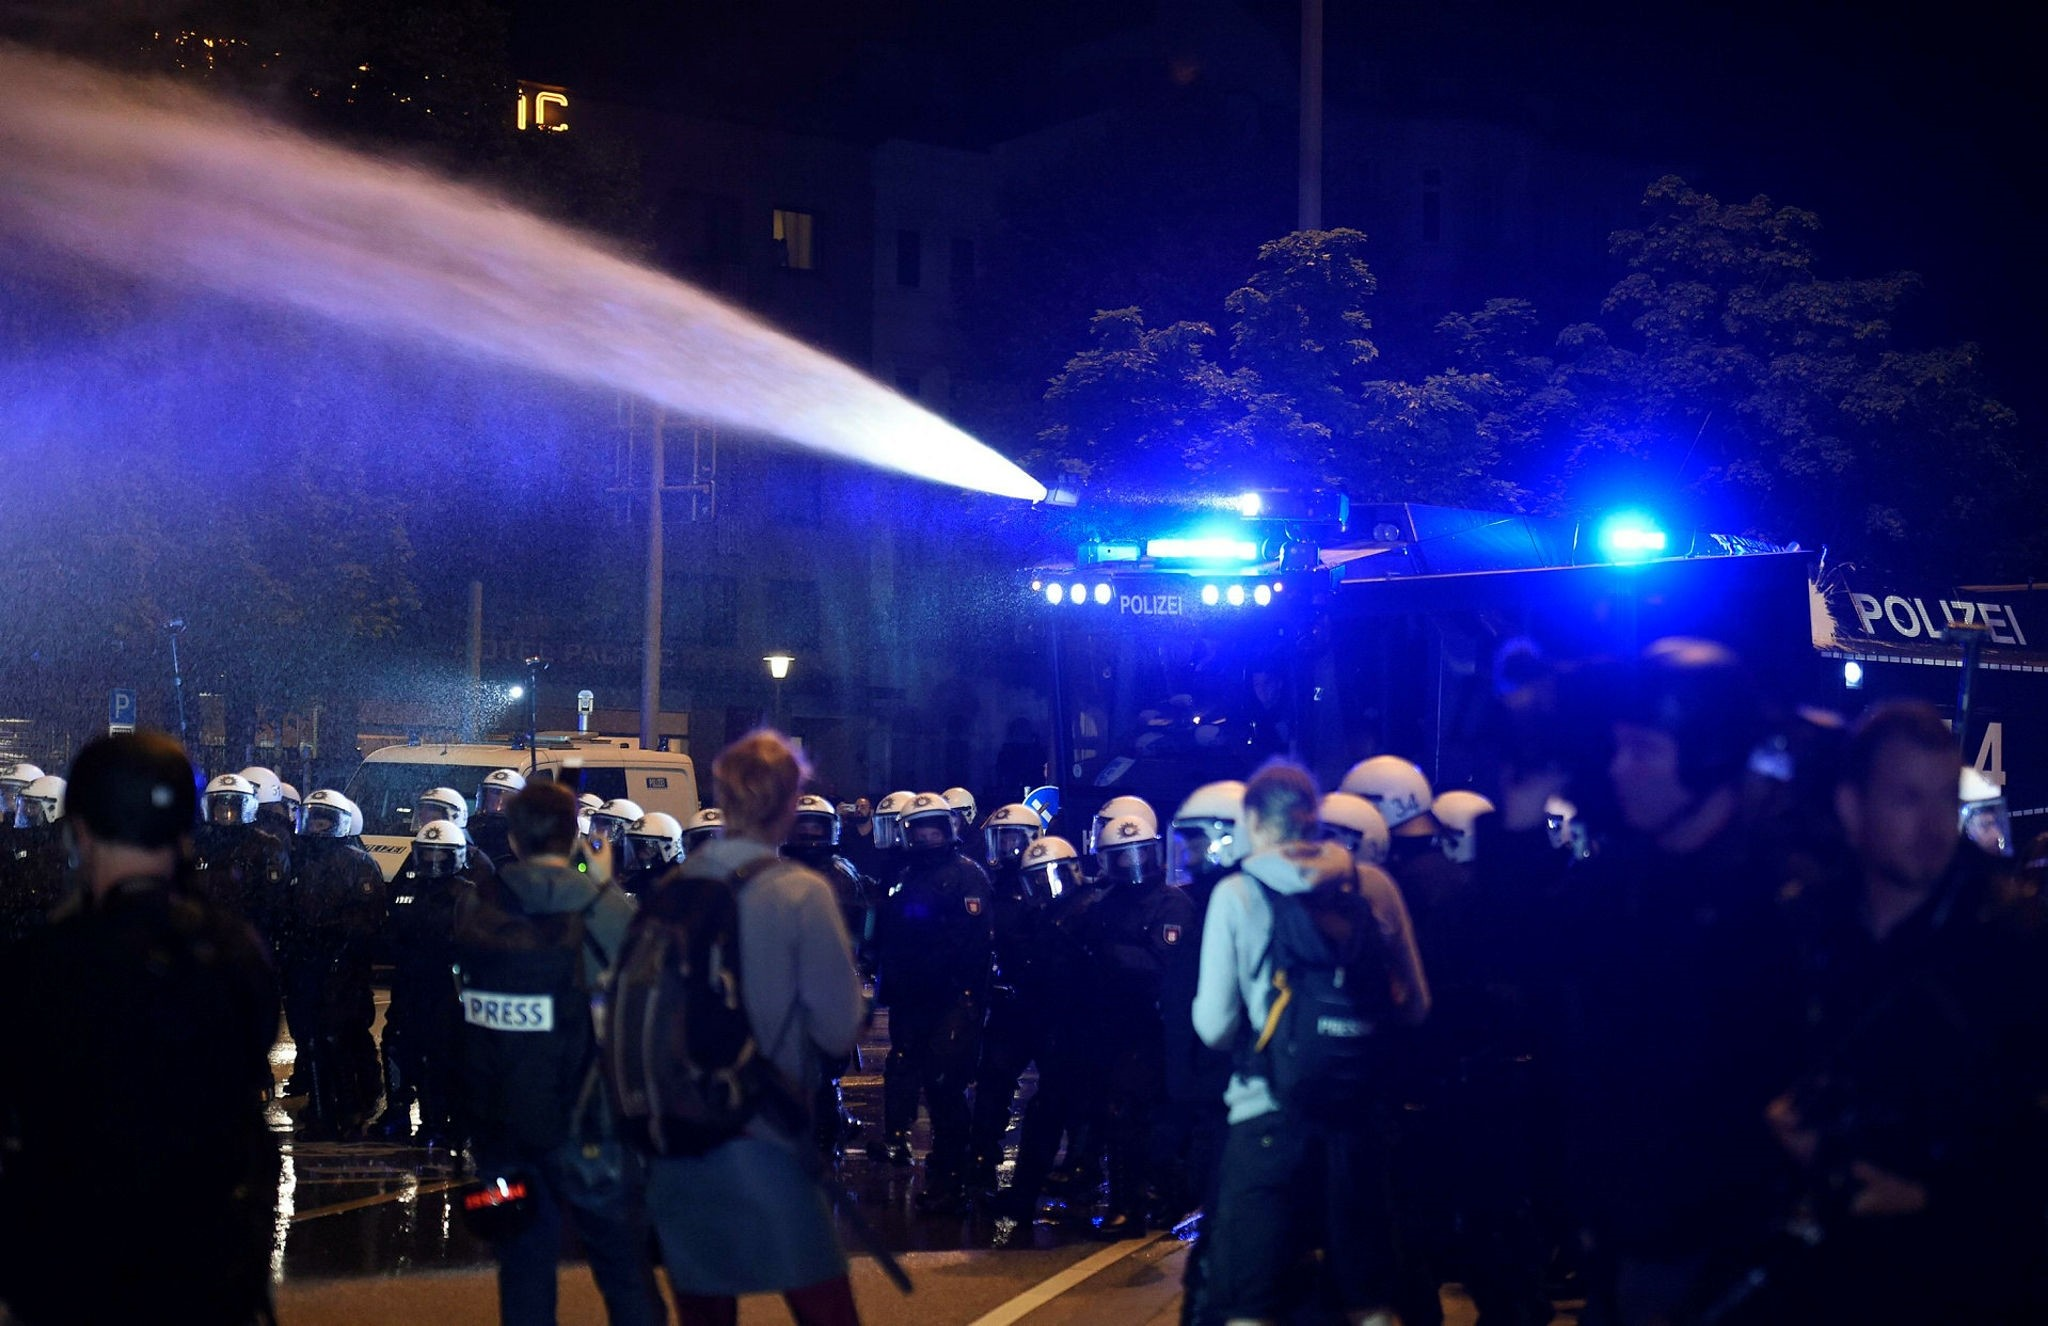 German riot police use a water cannon during a protest ahead the G20 summit in Hamburg, Germany, July 4, 2017. (Reuters Photo)